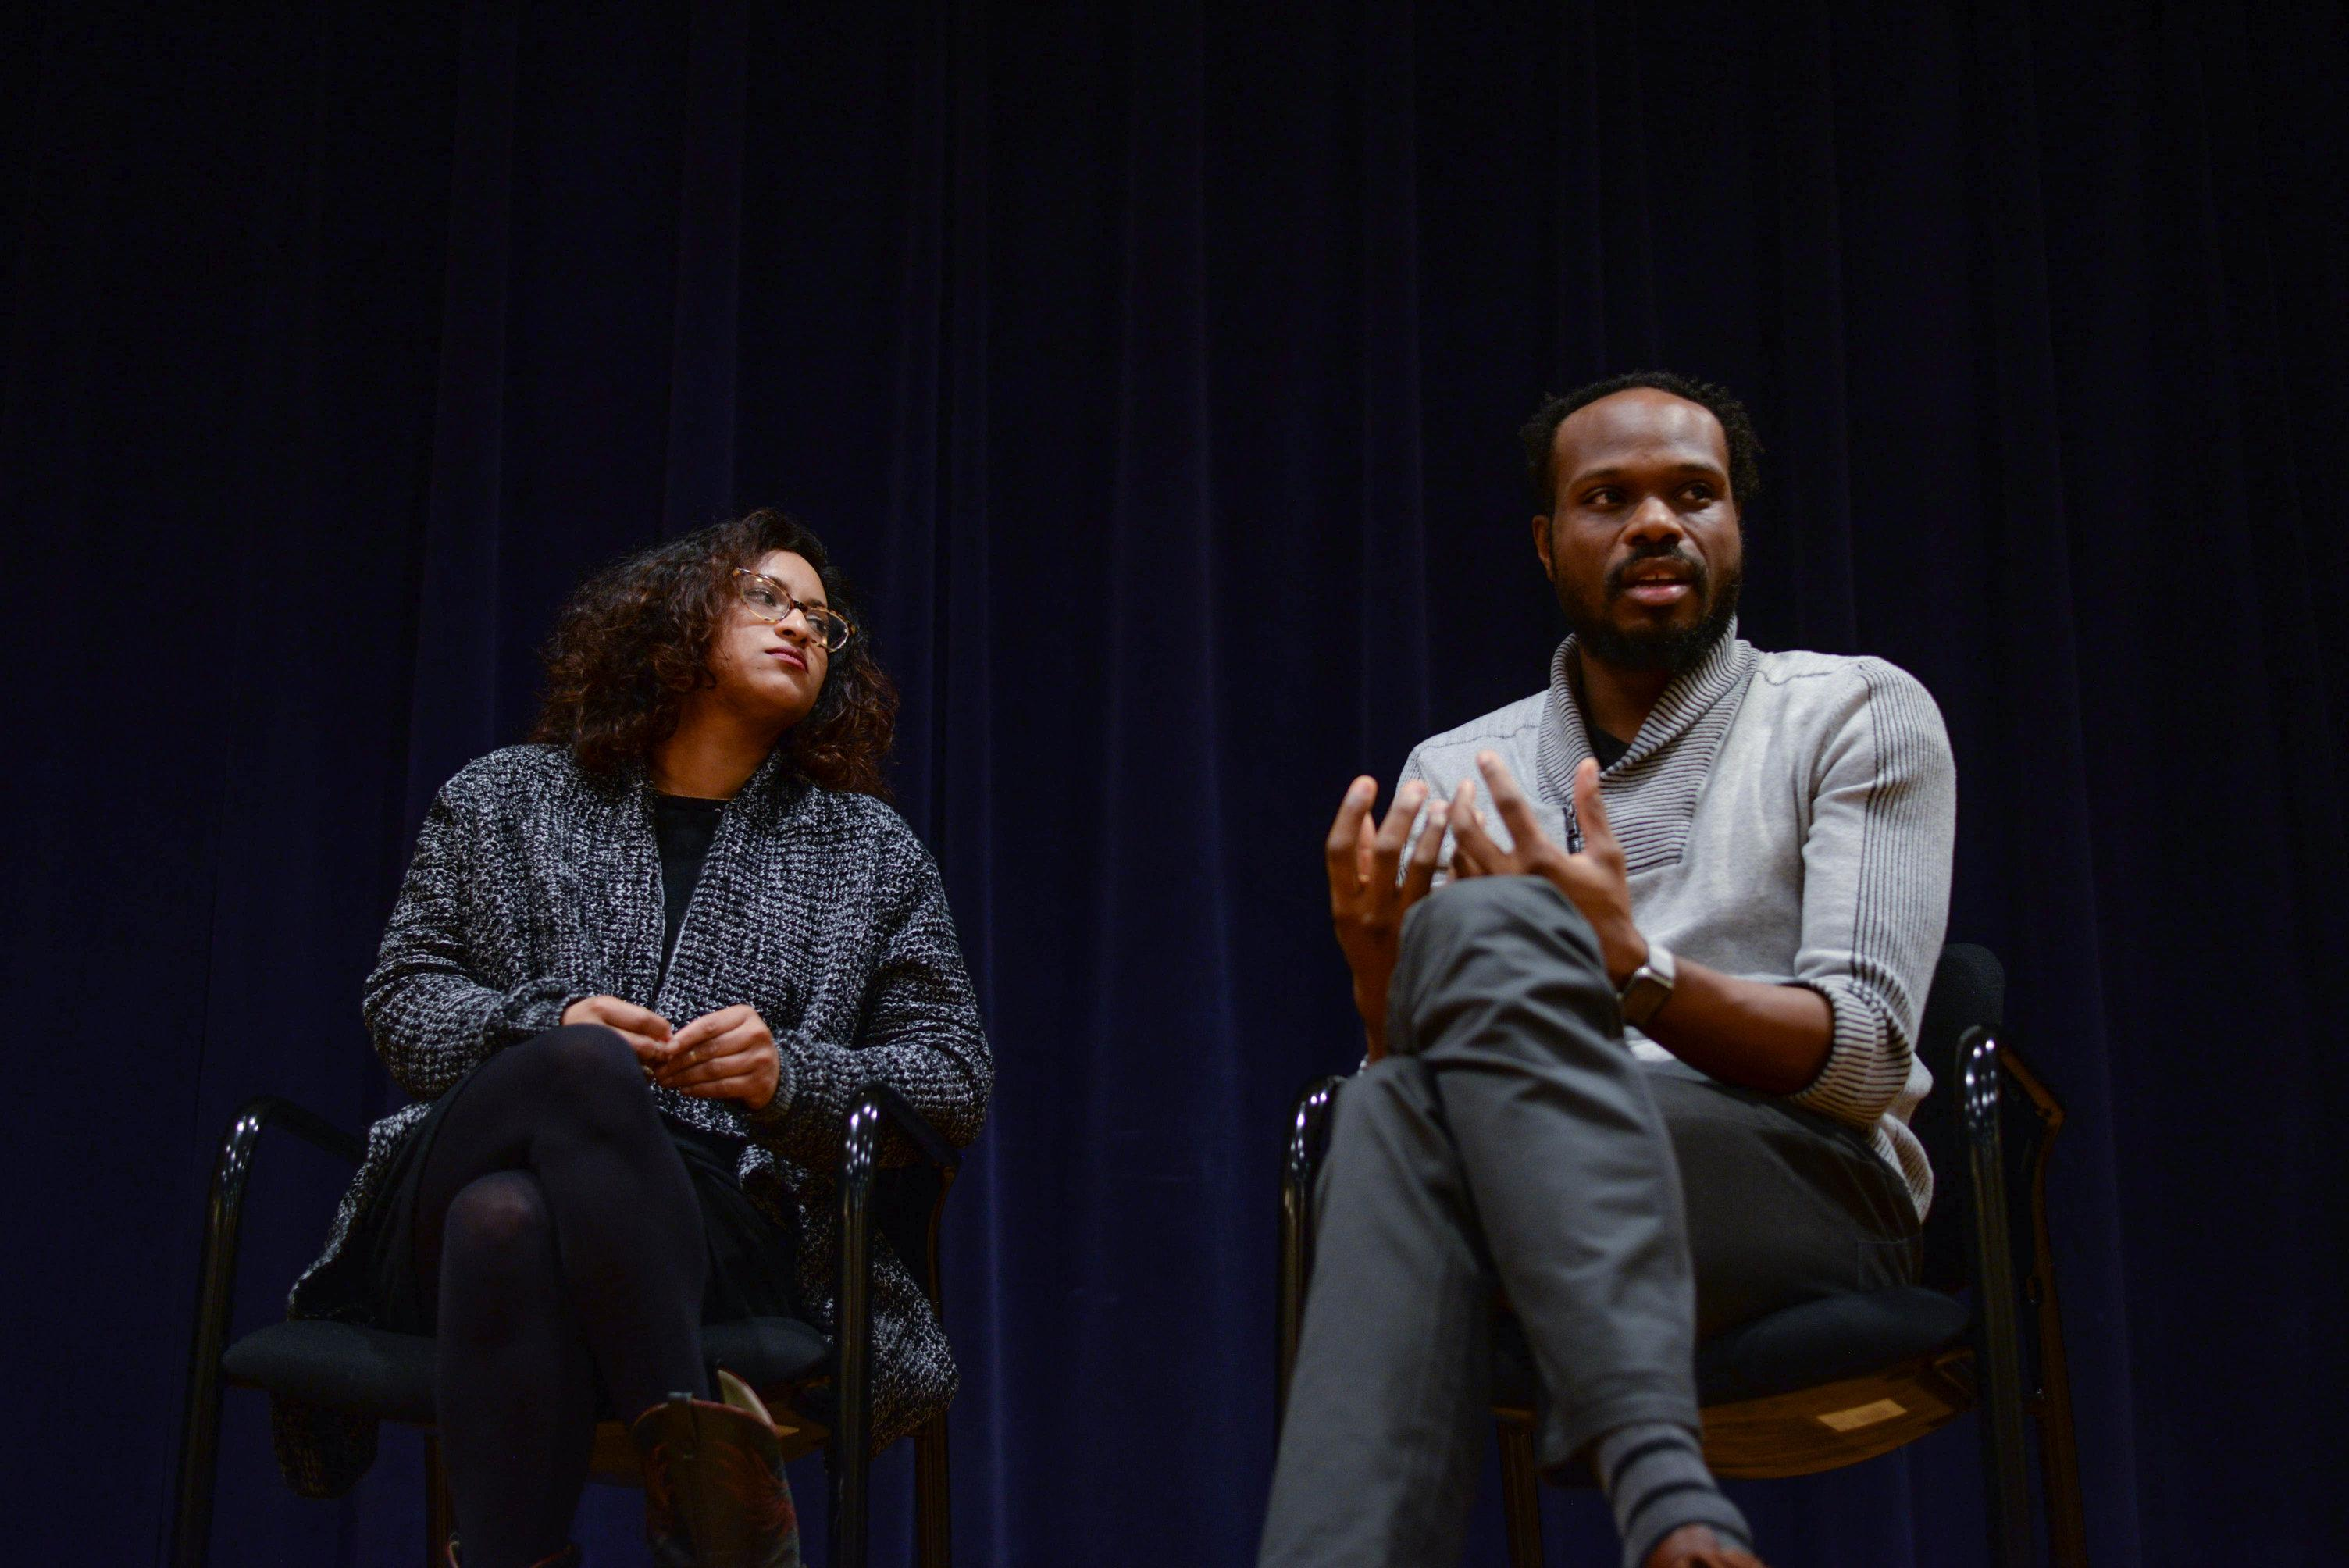 Tarfia Faizullah and Jamaal May Q&A